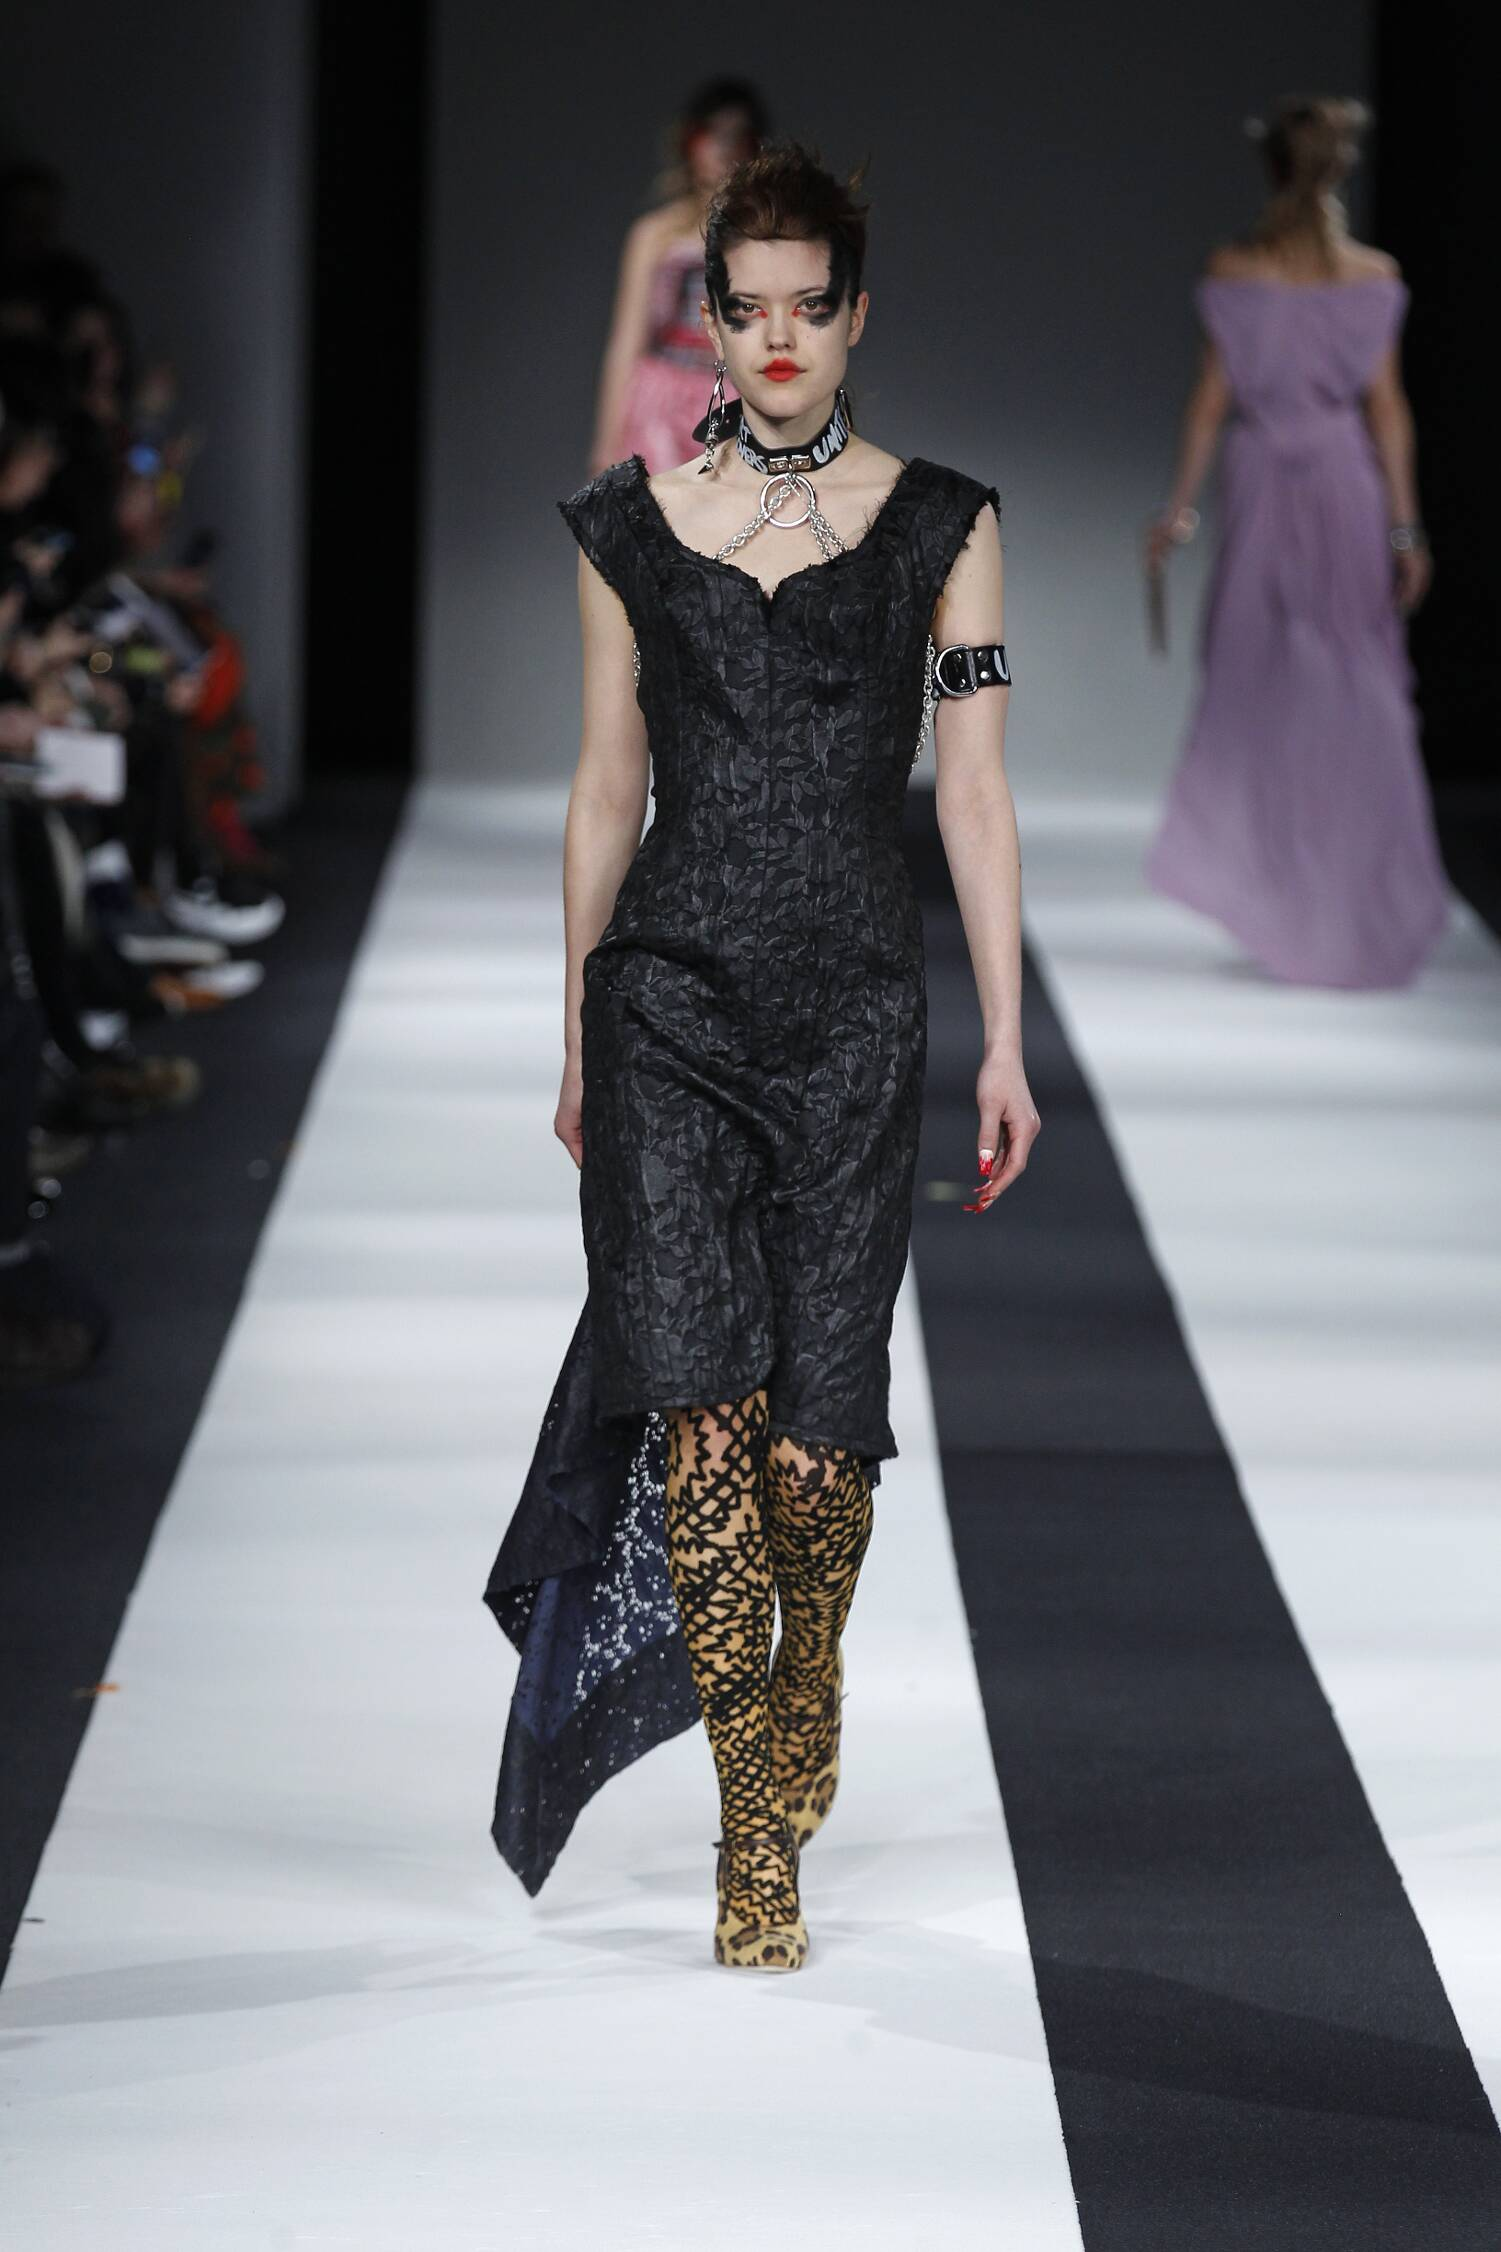 Vivienne Westwood Red Label Collection Fashion Show FW 2015 2016